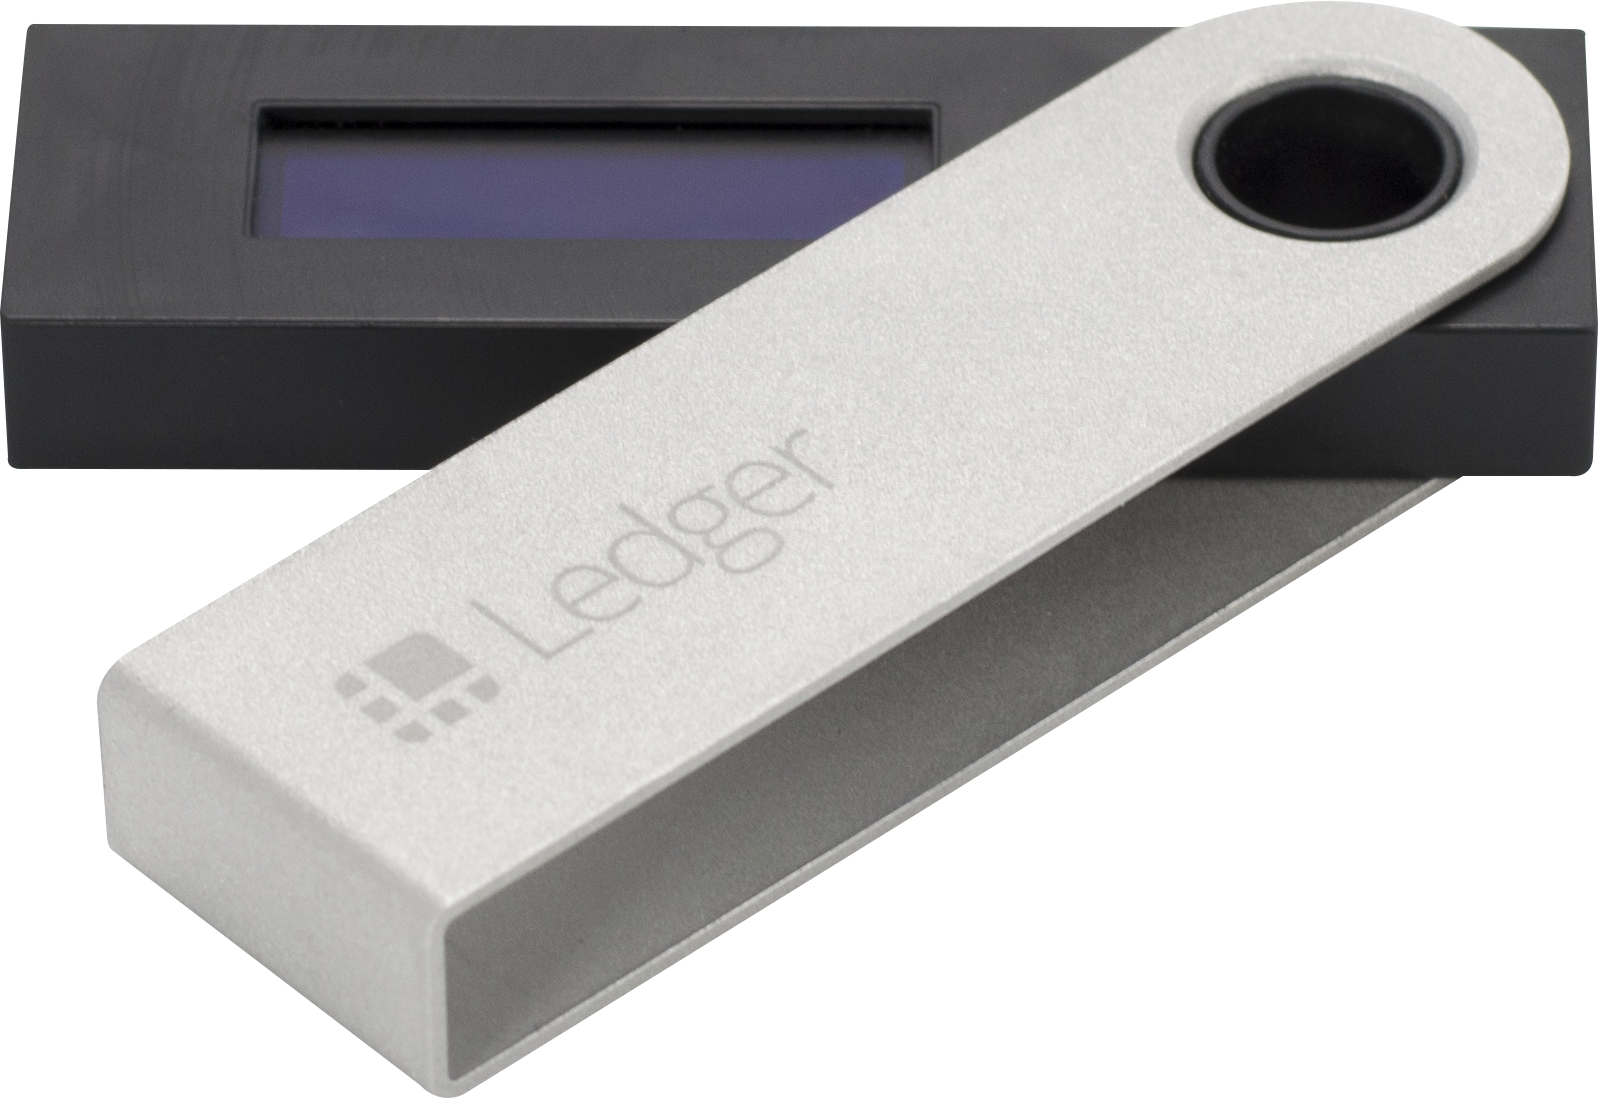 Ledger Nano S Cryptocurrency Hardware Wallet Miner Parts Bitcoin Previous Next